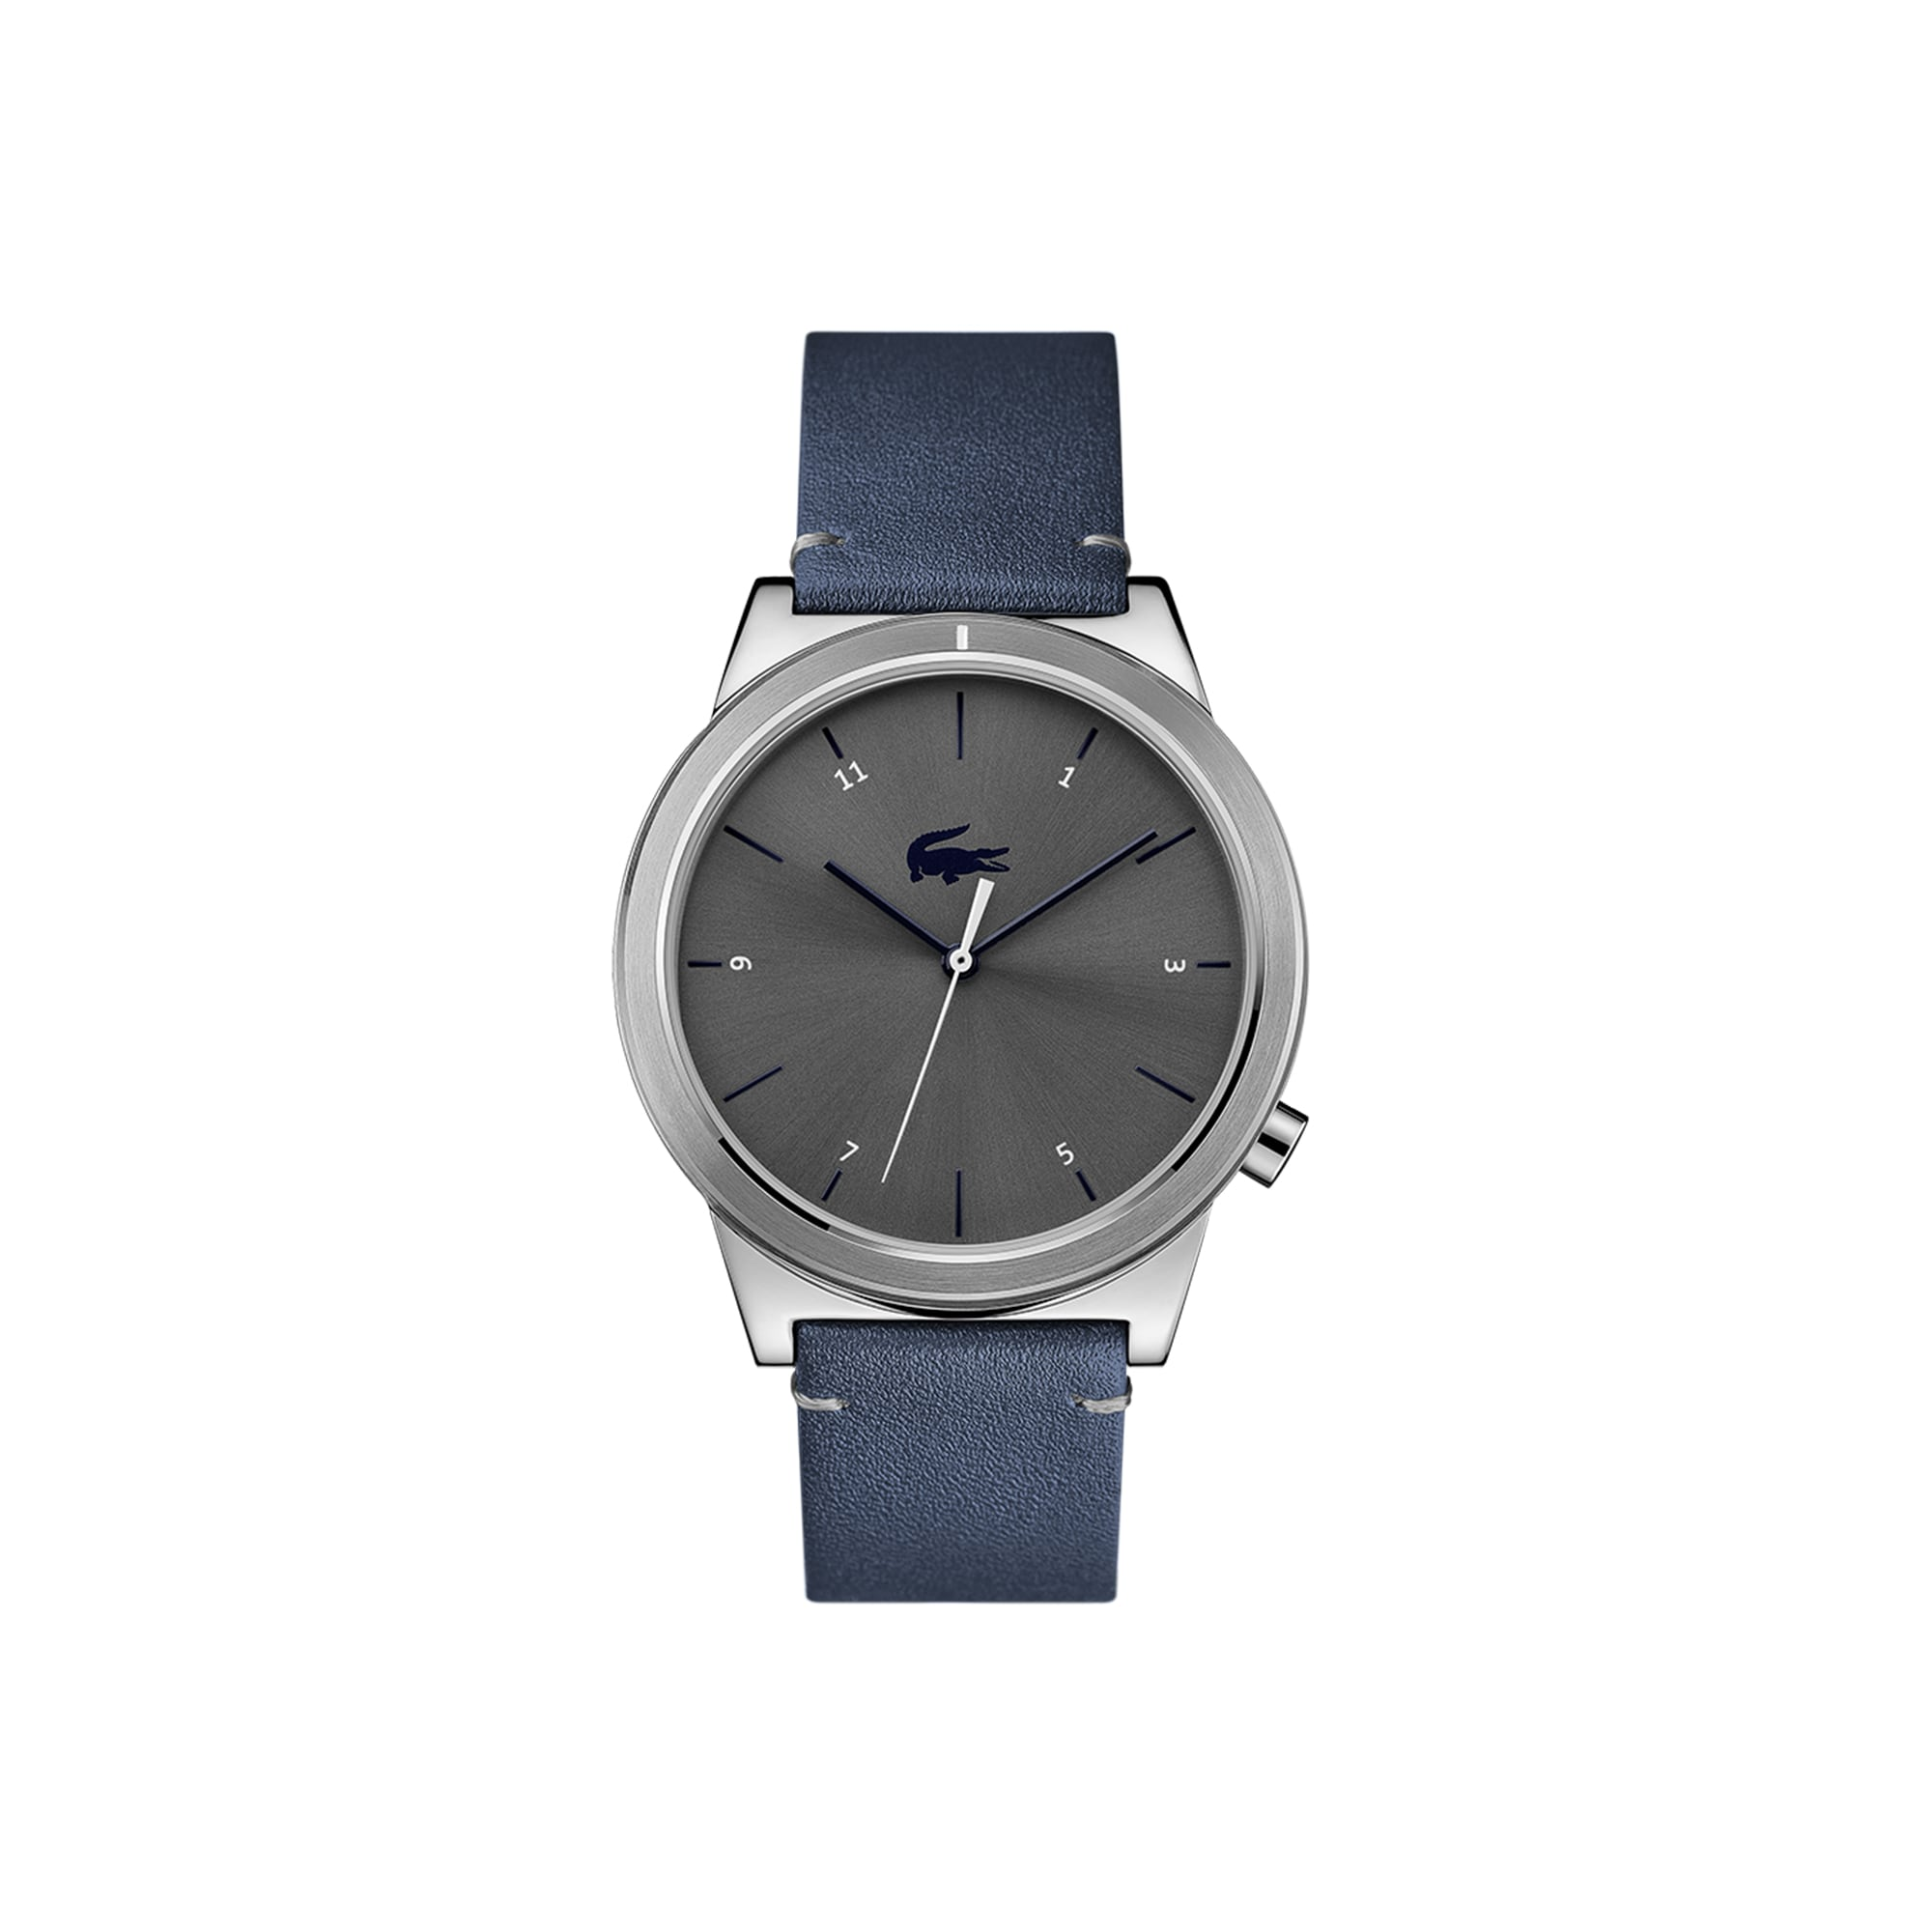 c7664fec7 Men's Motion Watch with Blue Leather Strap | LACOSTE